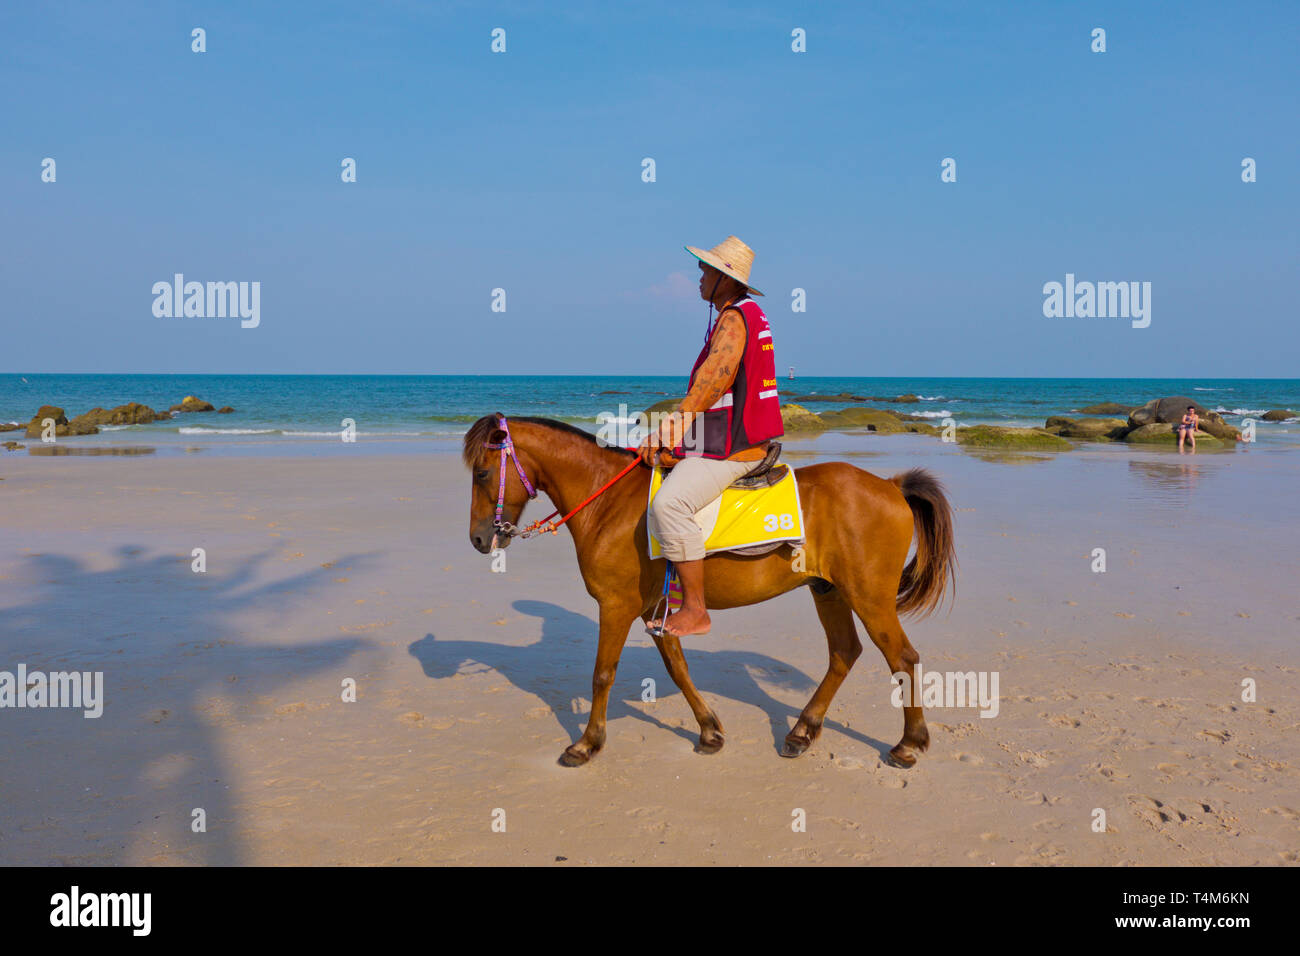 Pony for hire, beach, Hua Hin, Thailand Stock Photo